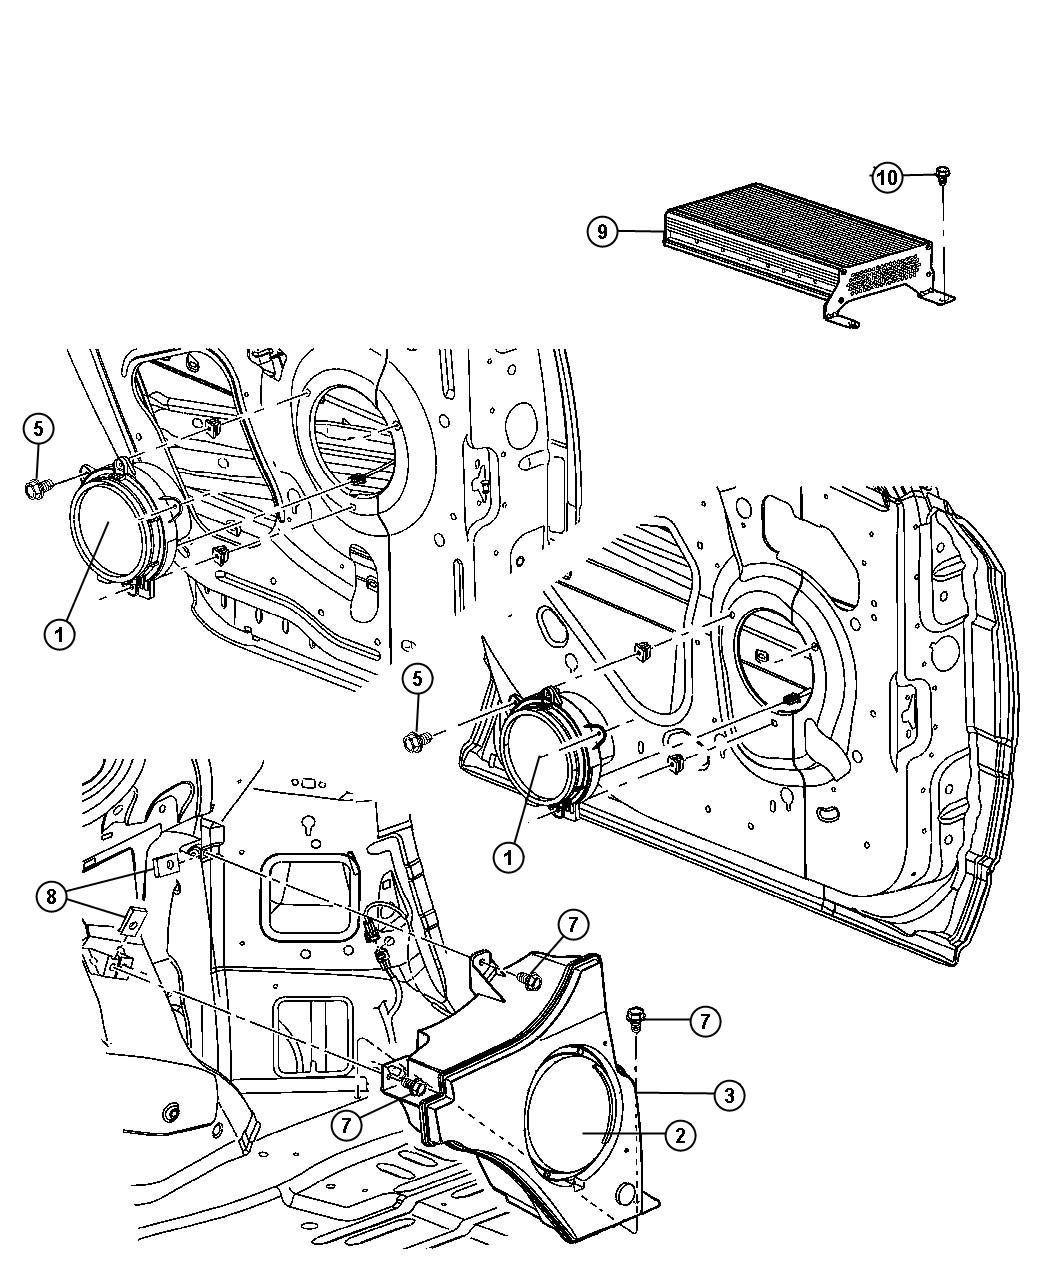 Chrysler pacifica subwoofer